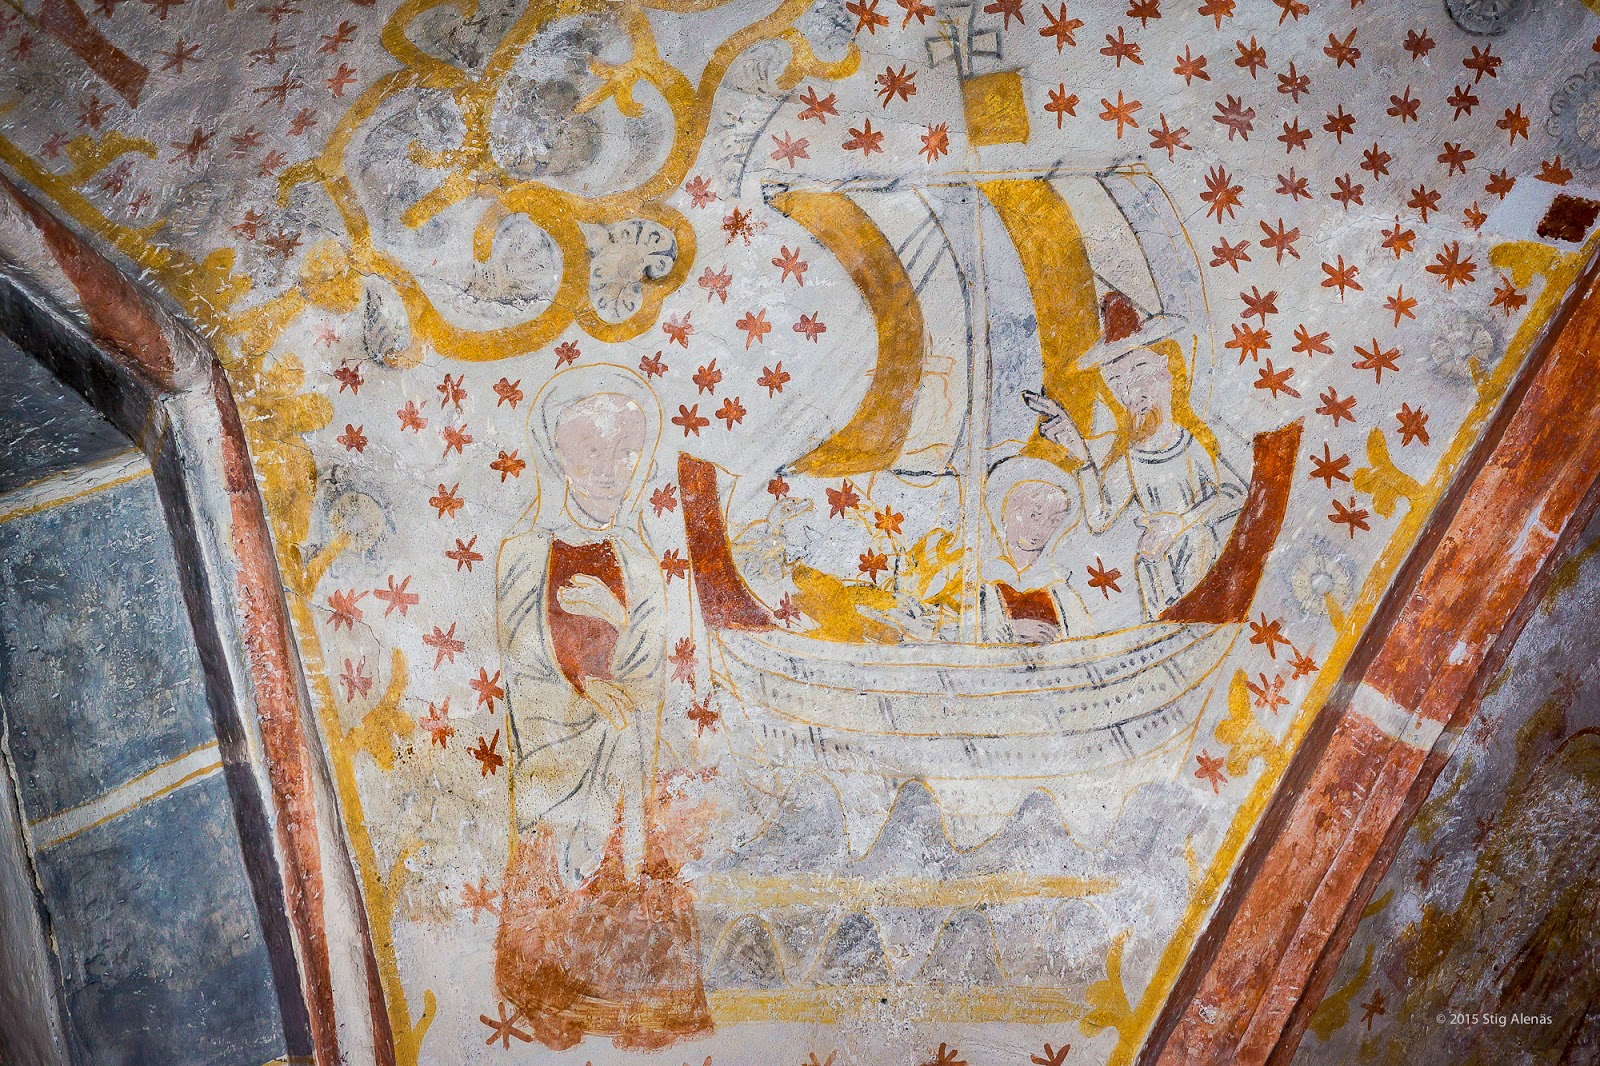 ark, vault, mural, eagle, wife, ceiling, ship, noah, editorial, sweden, church, heritage, architecture, interior, fresco, religion, art, sail, rabbit, gothic, noah's ark, fjelie, wall-painting, https://www.shutterstock.com/image-photo/gothic-fresco-noah-his-wife-ark-541311220